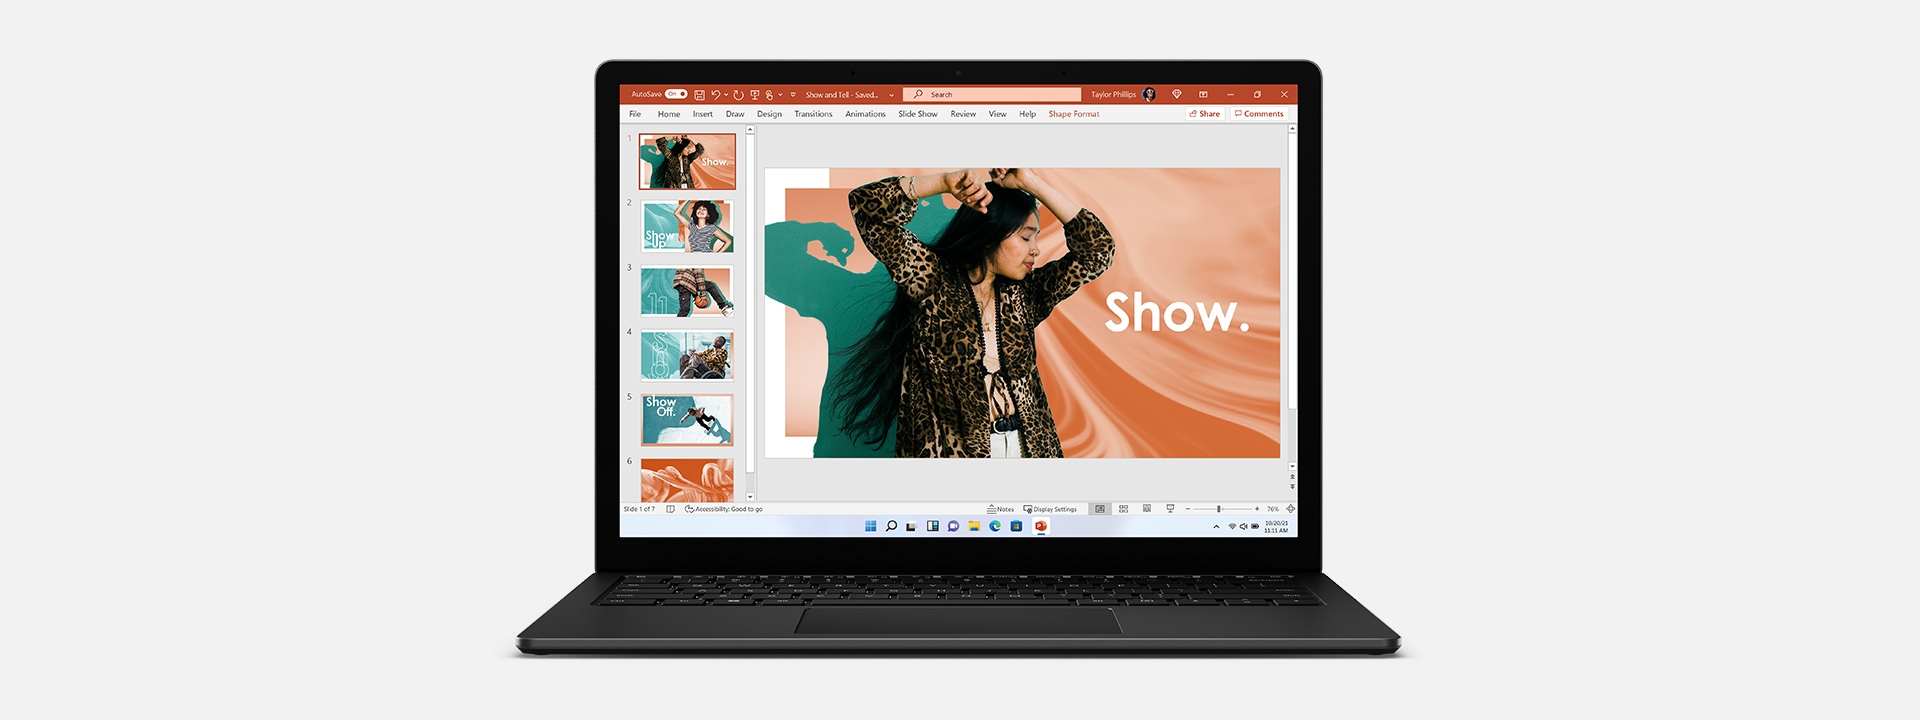 Surface Laptop 4 en negro mate que muestra Microsoft PowerPoint